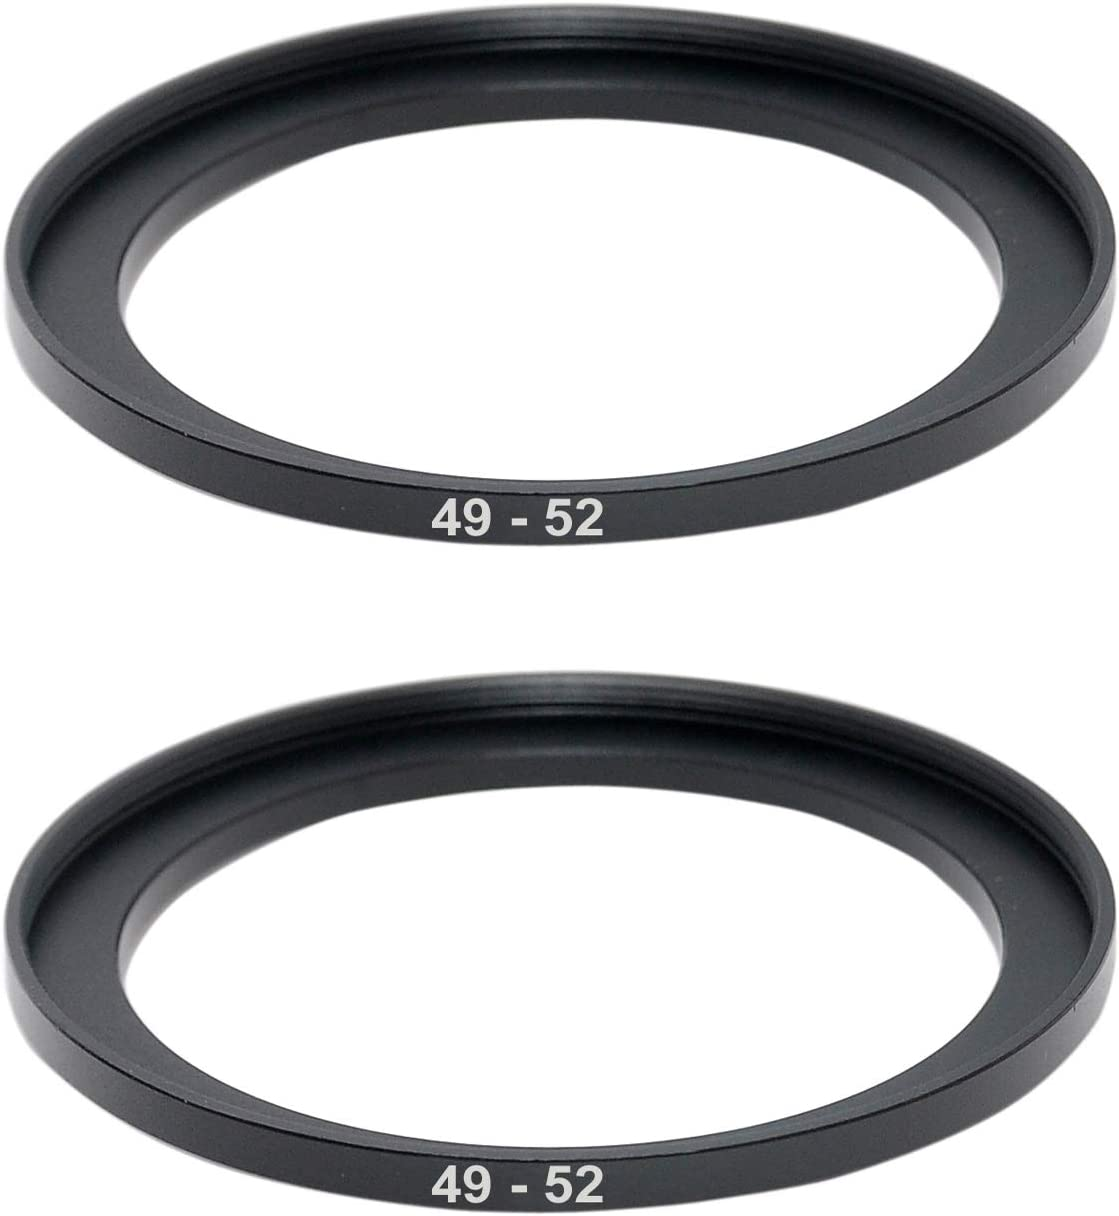 (2 Packs) 49-52MM Step-Up Ring Adapter, 49mm to 52mm Step Up Filter Ring, 49mm Male 52mm Female Stepping Up Ring for DSLR Camera Lens and ND UV CPL Infrared Filters